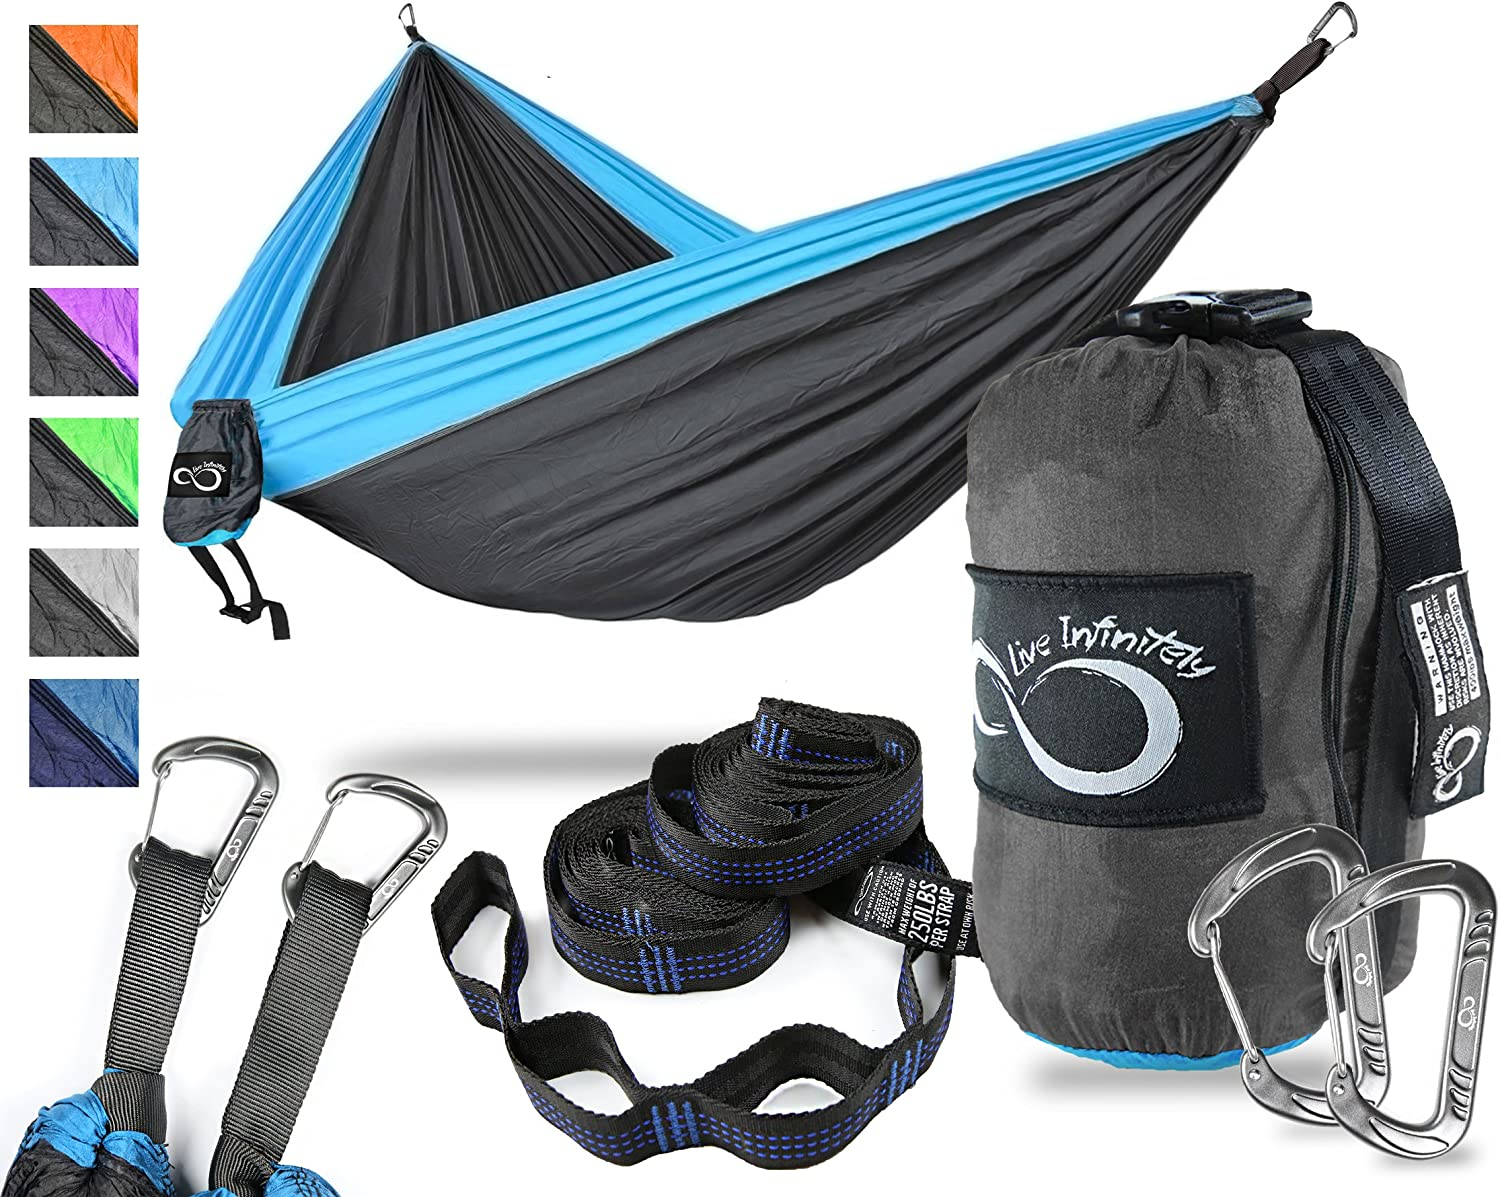 Fits easily in backpack Hunting Strong Traveling Fishing /& Lightweight Portable Outdoor Single One Person Compact Nylon Camping Hammock With Straps /& Steel Carabiners Ideal for Day Hiking